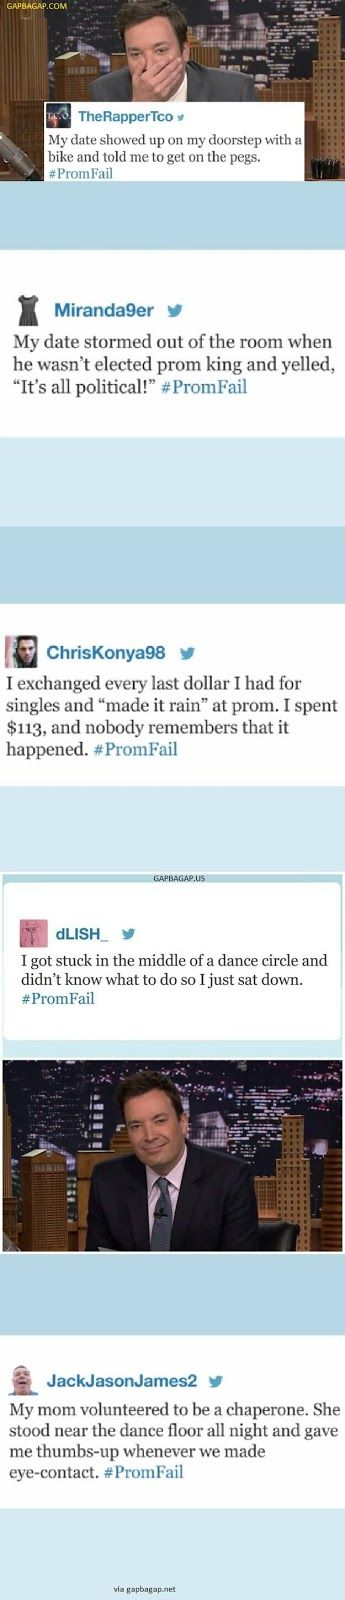 Top 5 #Funny Tweets About #PromFail ft. Jimmy Fallon